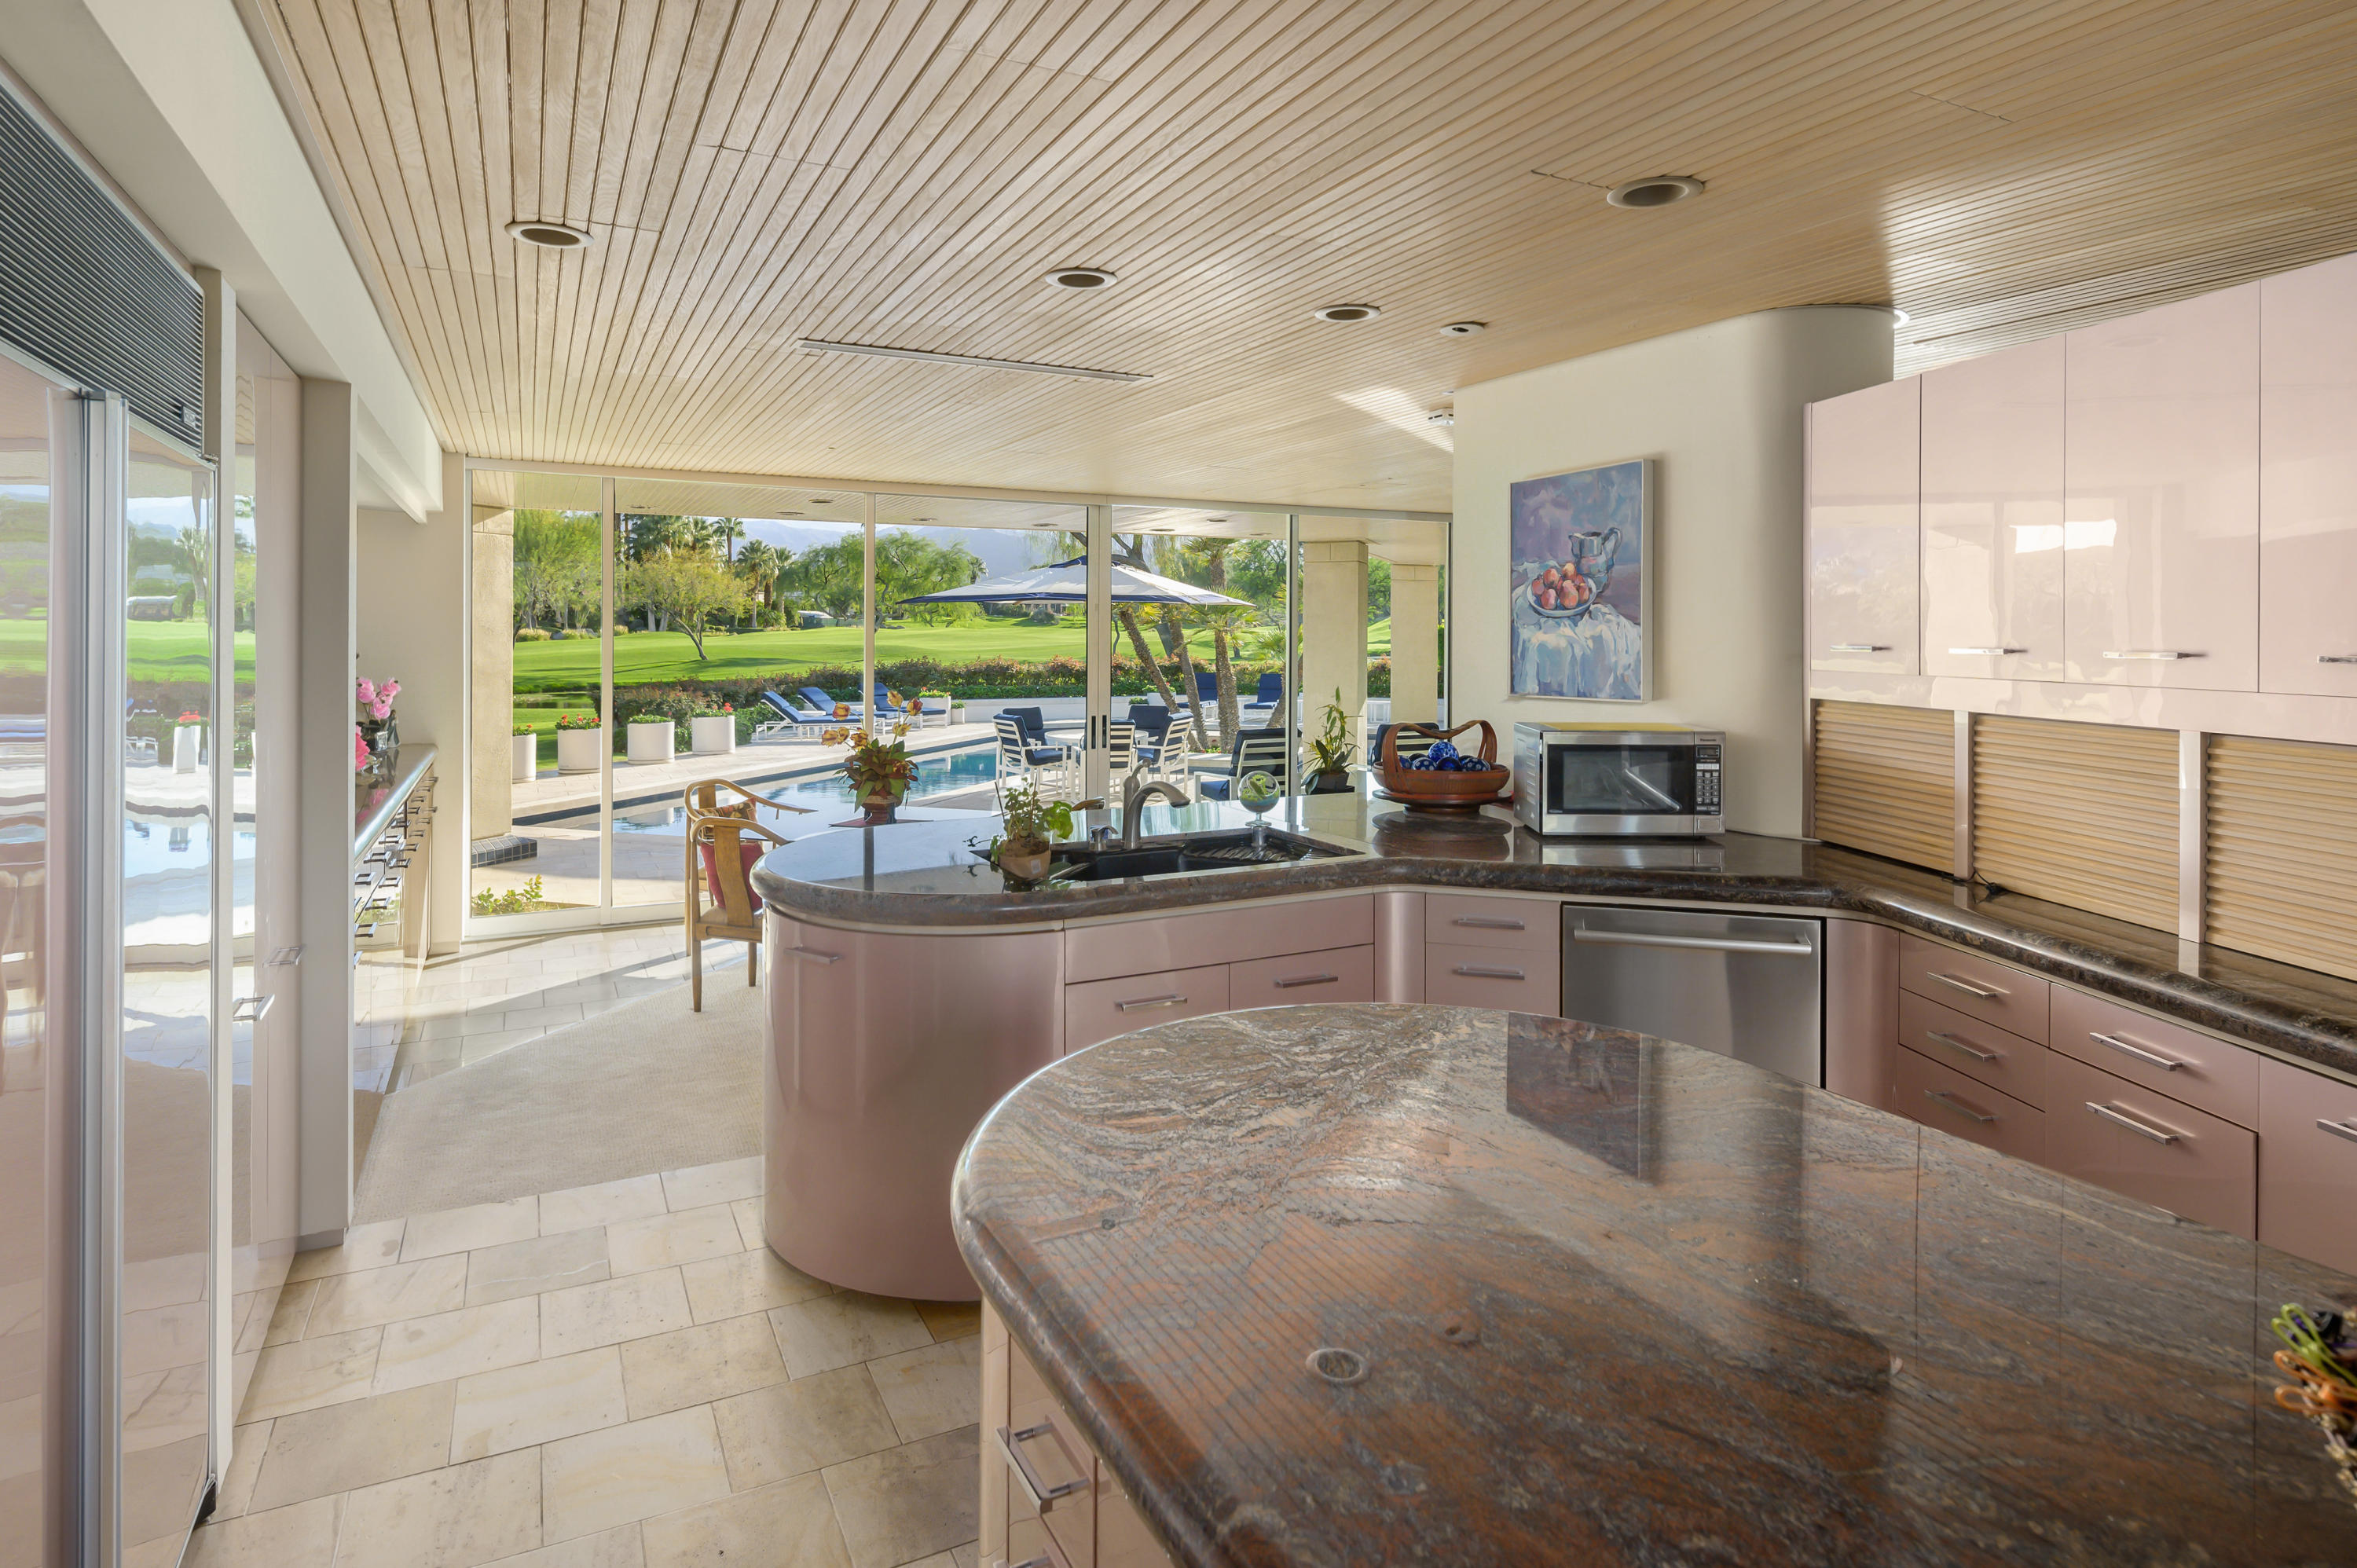 74125 Quail Lakes Drive, Indian Wells, California 92210, 5 Bedrooms Bedrooms, ,7 BathroomsBathrooms,Residential,For Sale,74125 Quail Lakes Drive,219037360